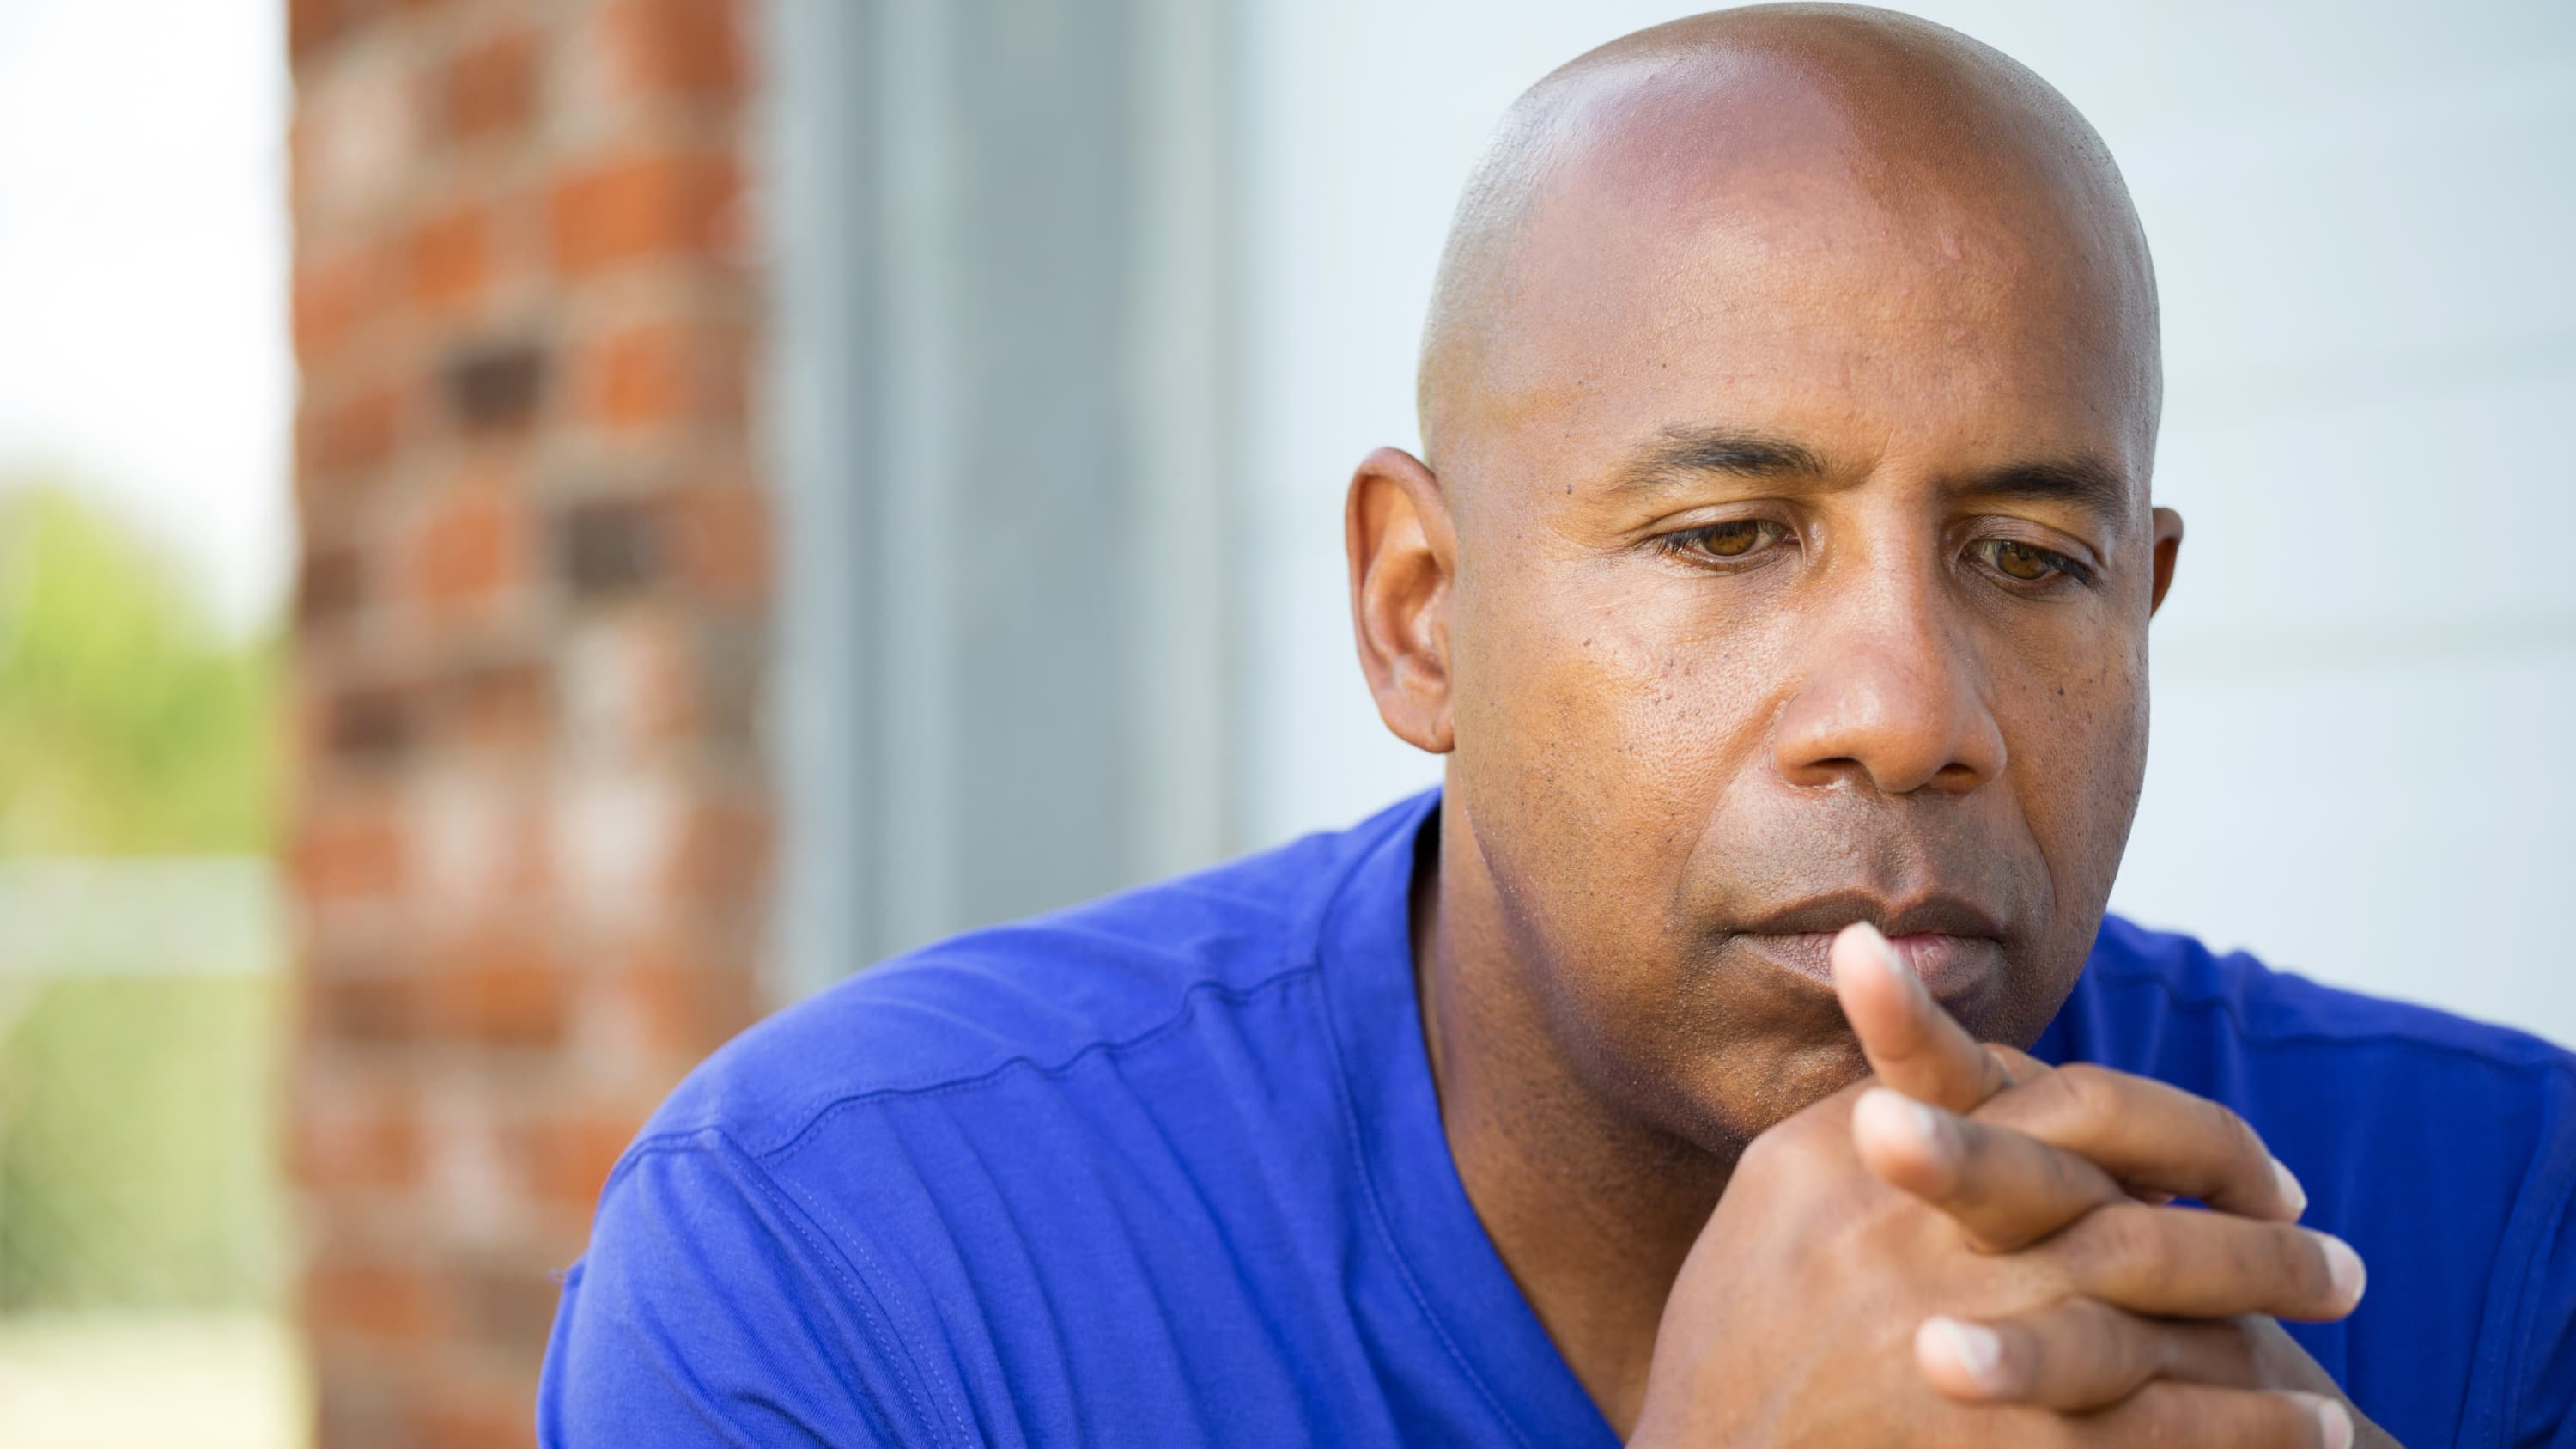 A man who may have a hernia sits with a worried look